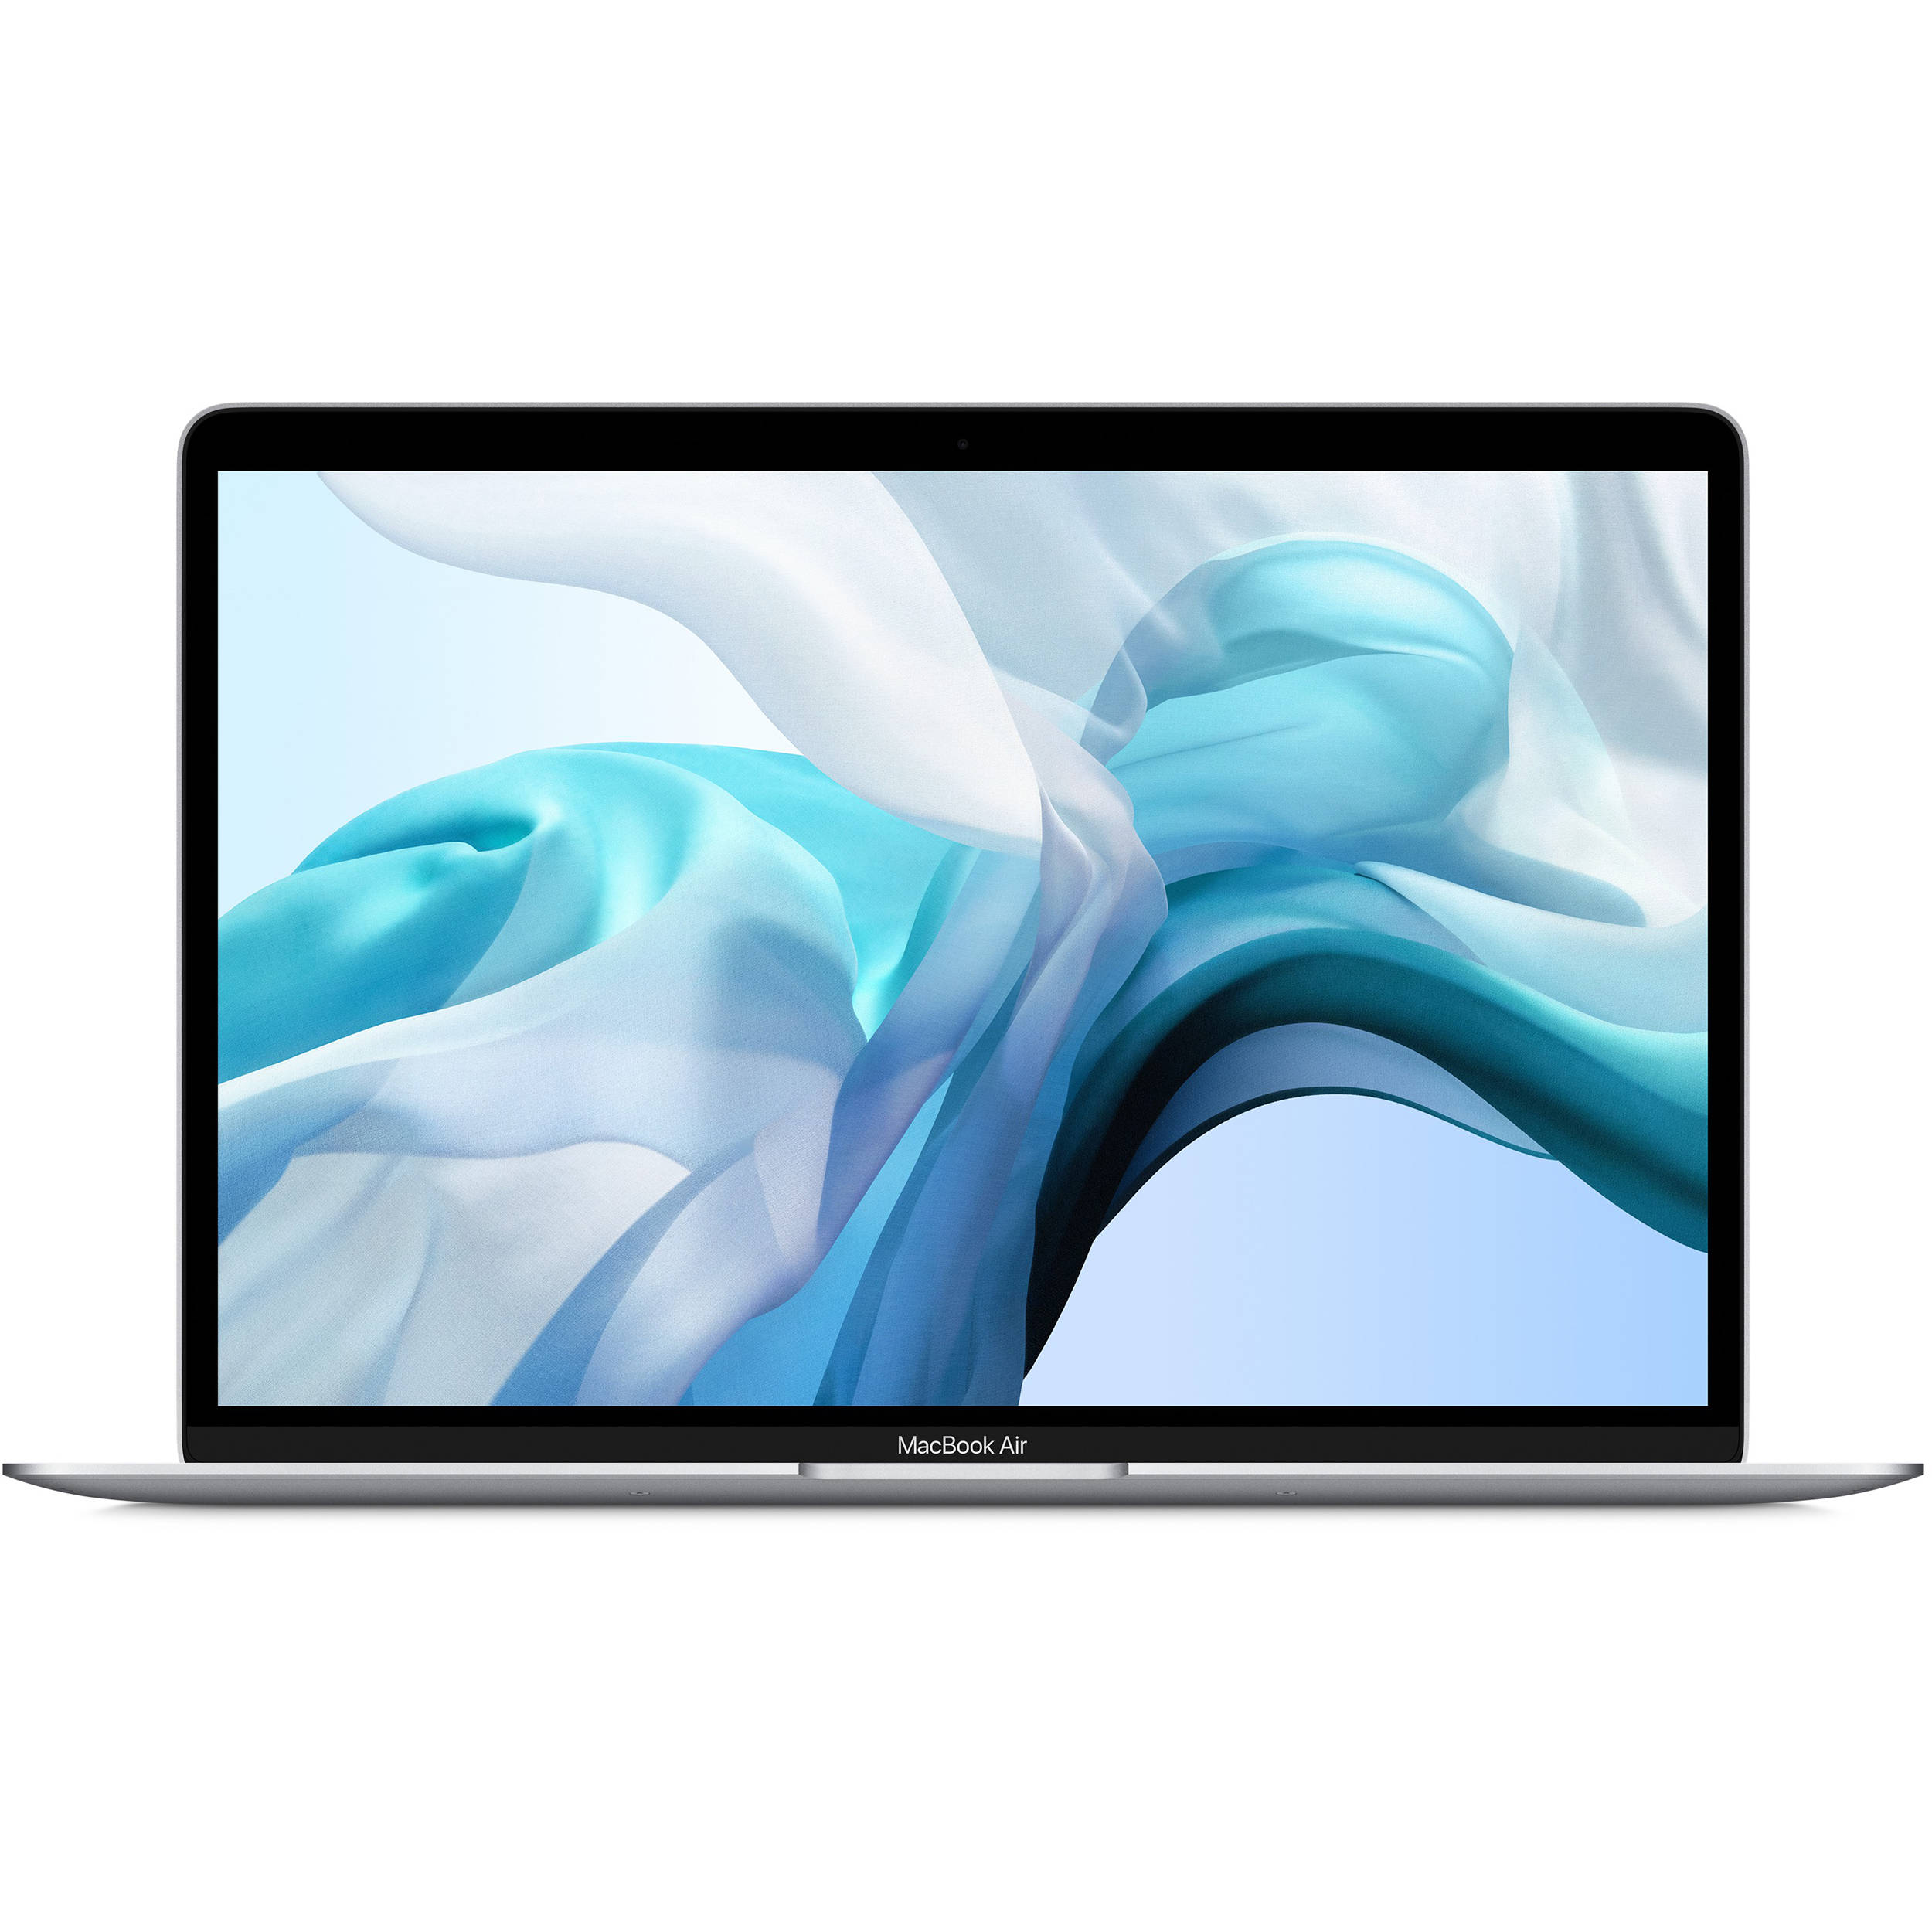 Image of Apple MacBook Air (2020) 13-inch Intel Core i3 8GB 256GB TK2 - Silver (US Keyboard)